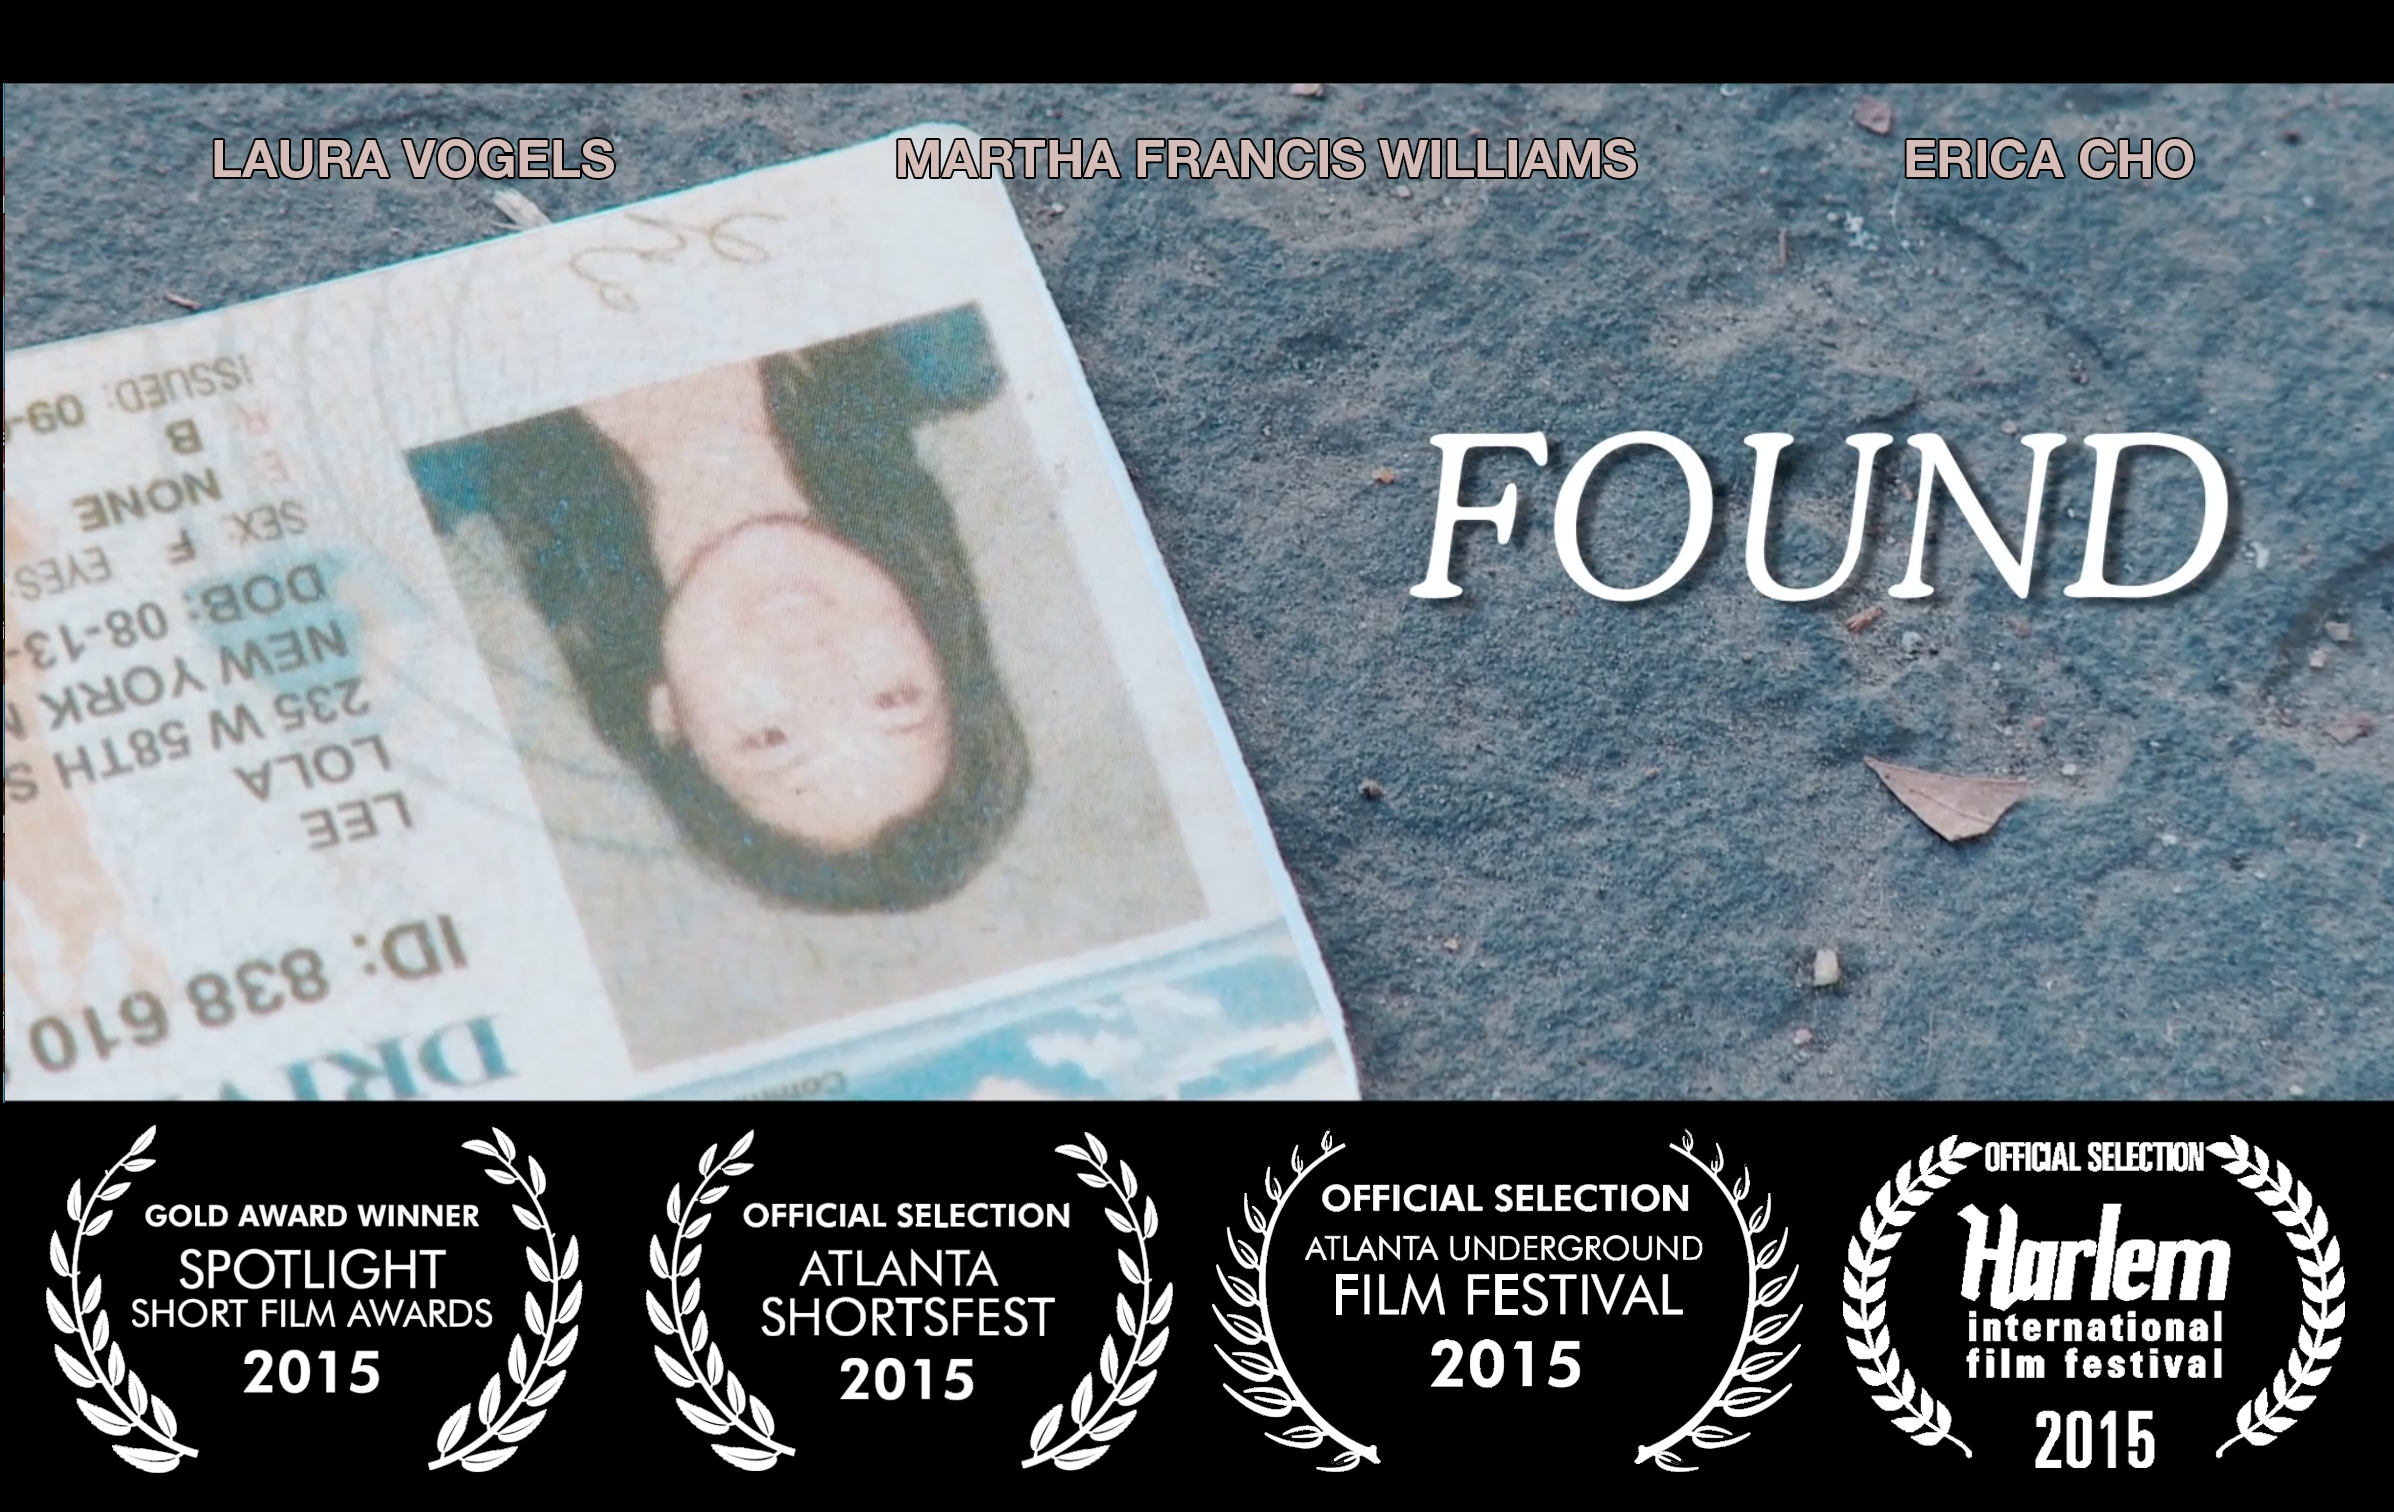 So excited to announce  Found  is a  Gold Award Winner  in the Spotlight Short Film Awards!! Take a look  here.